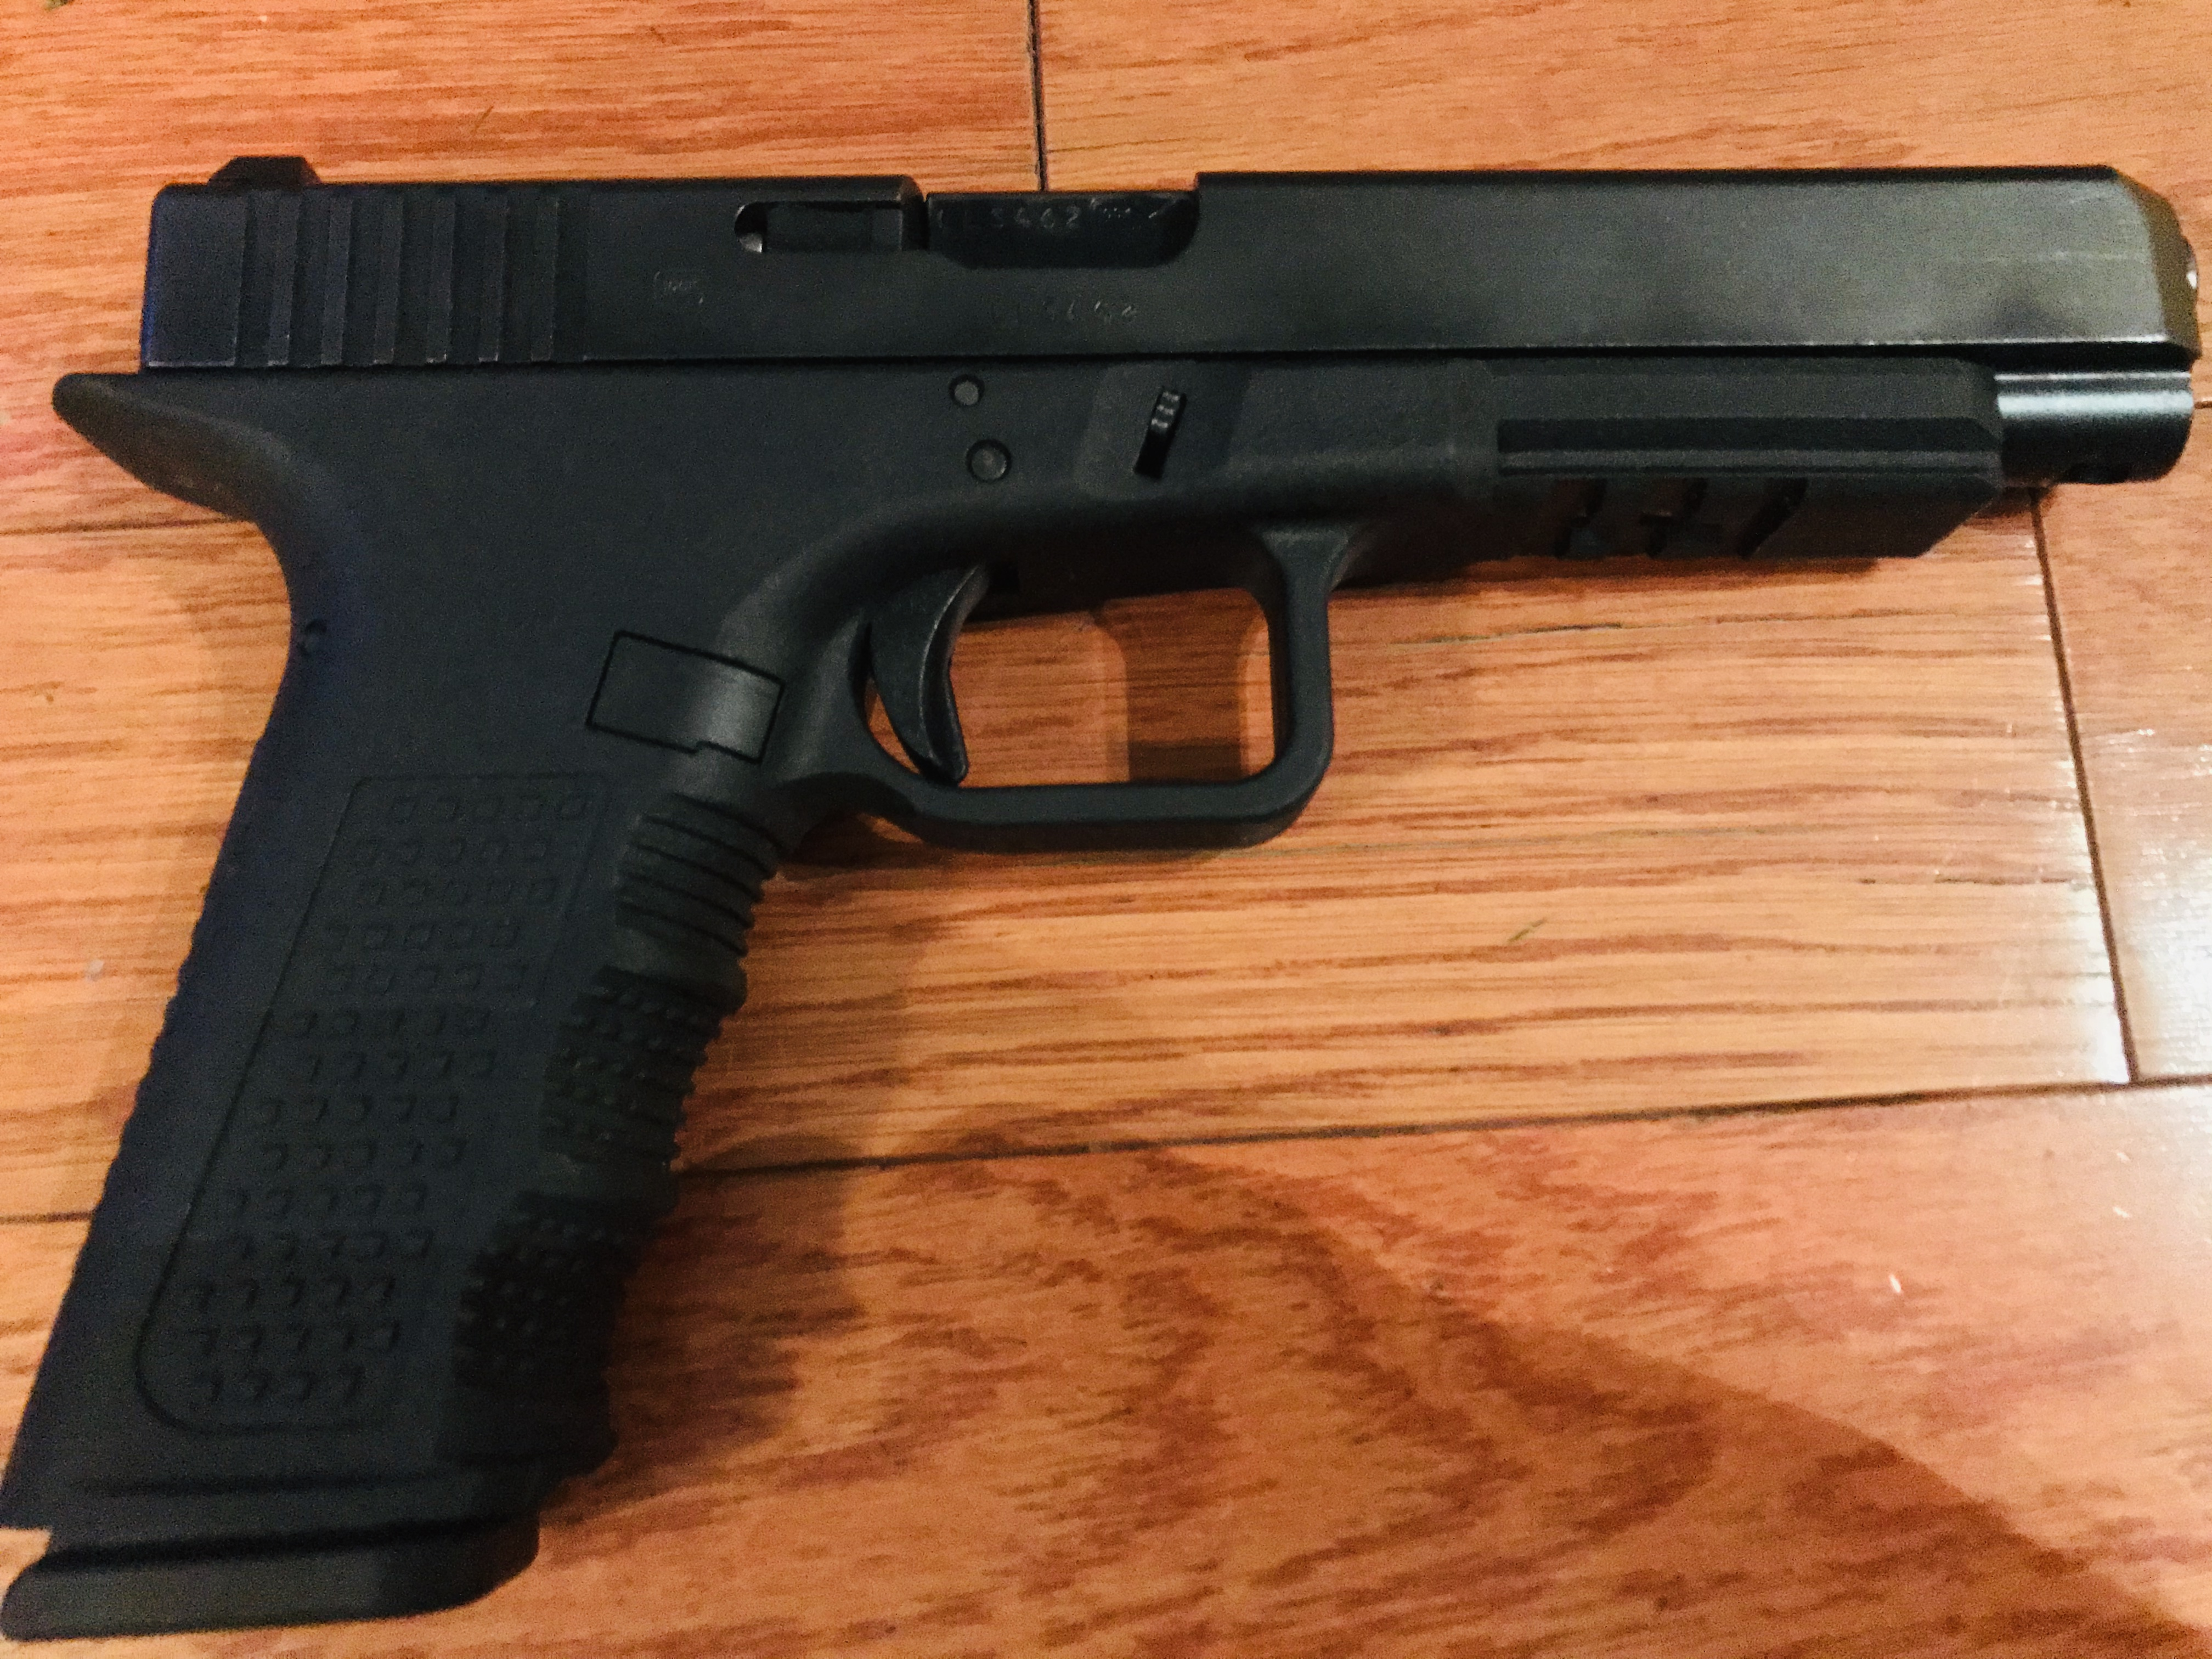 Glock 34 Gen3 Modded John Wick Gun Auction Id 17051478 End Time Feb 17 2020 13 18 01 Egunner